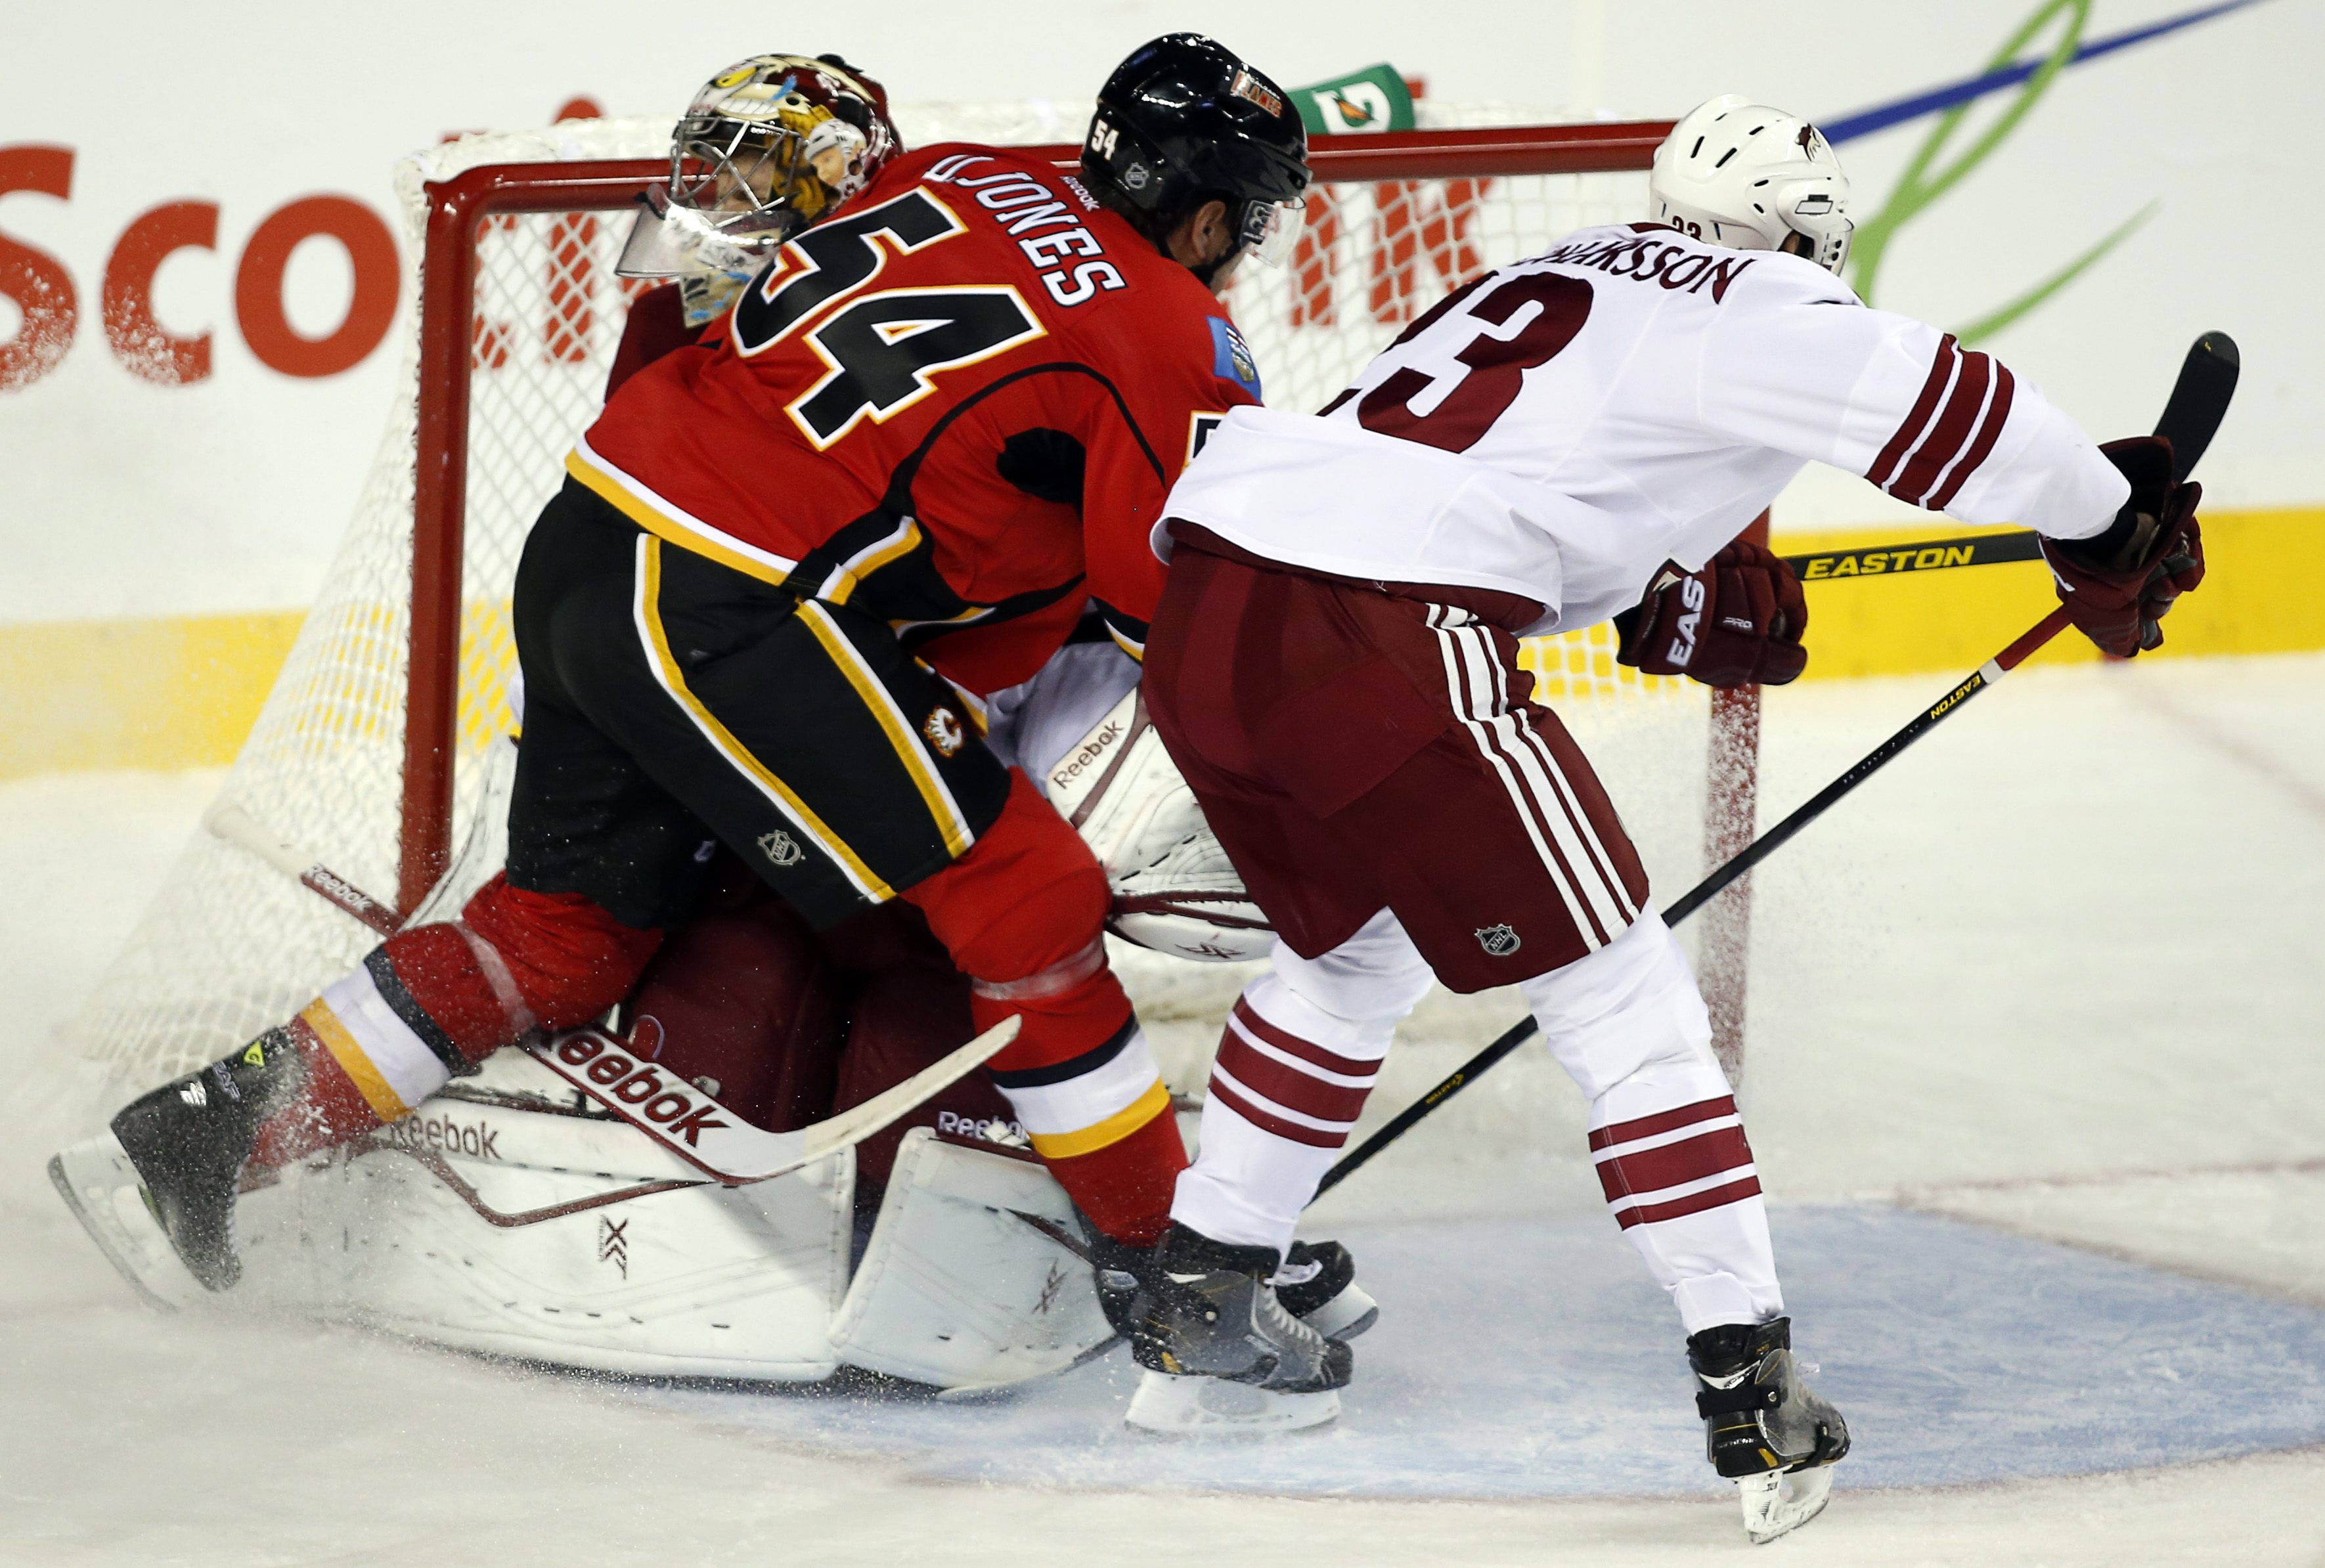 Phoenix Coyotes goalie Mike Smith, left, is slammed into the net by Calgary Flames' David Jones (54) as Coyotes' Oliver Ekman-Larsson, from Sweden, looks on during second-period NHL preseason hockey game action in Calgary, Alberta, Wednesday, Sept. 25, 2013